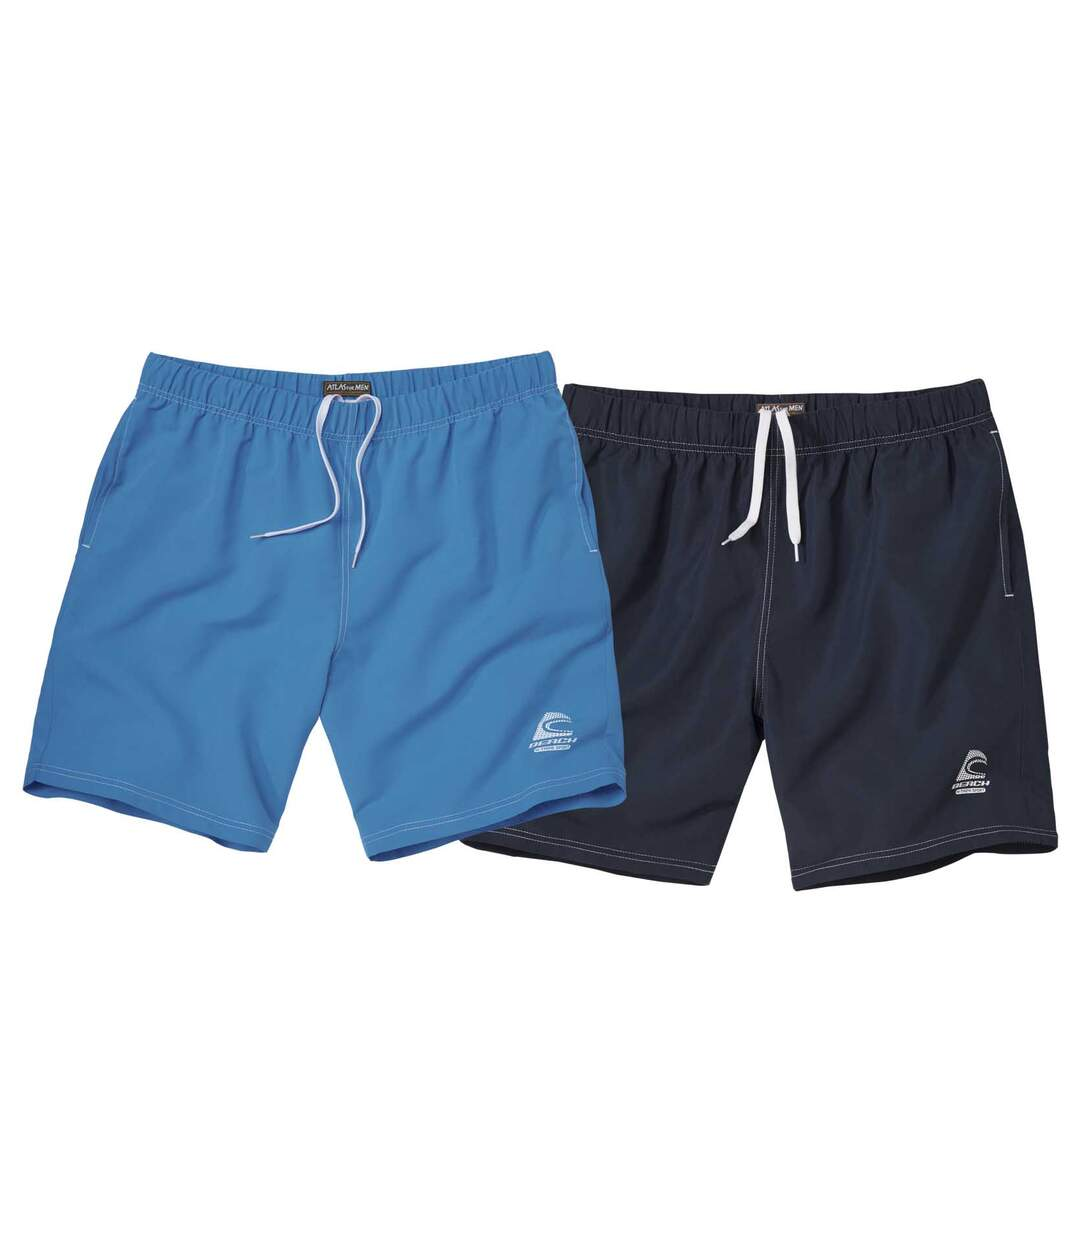 Set van 2 Summer Freedom shorts